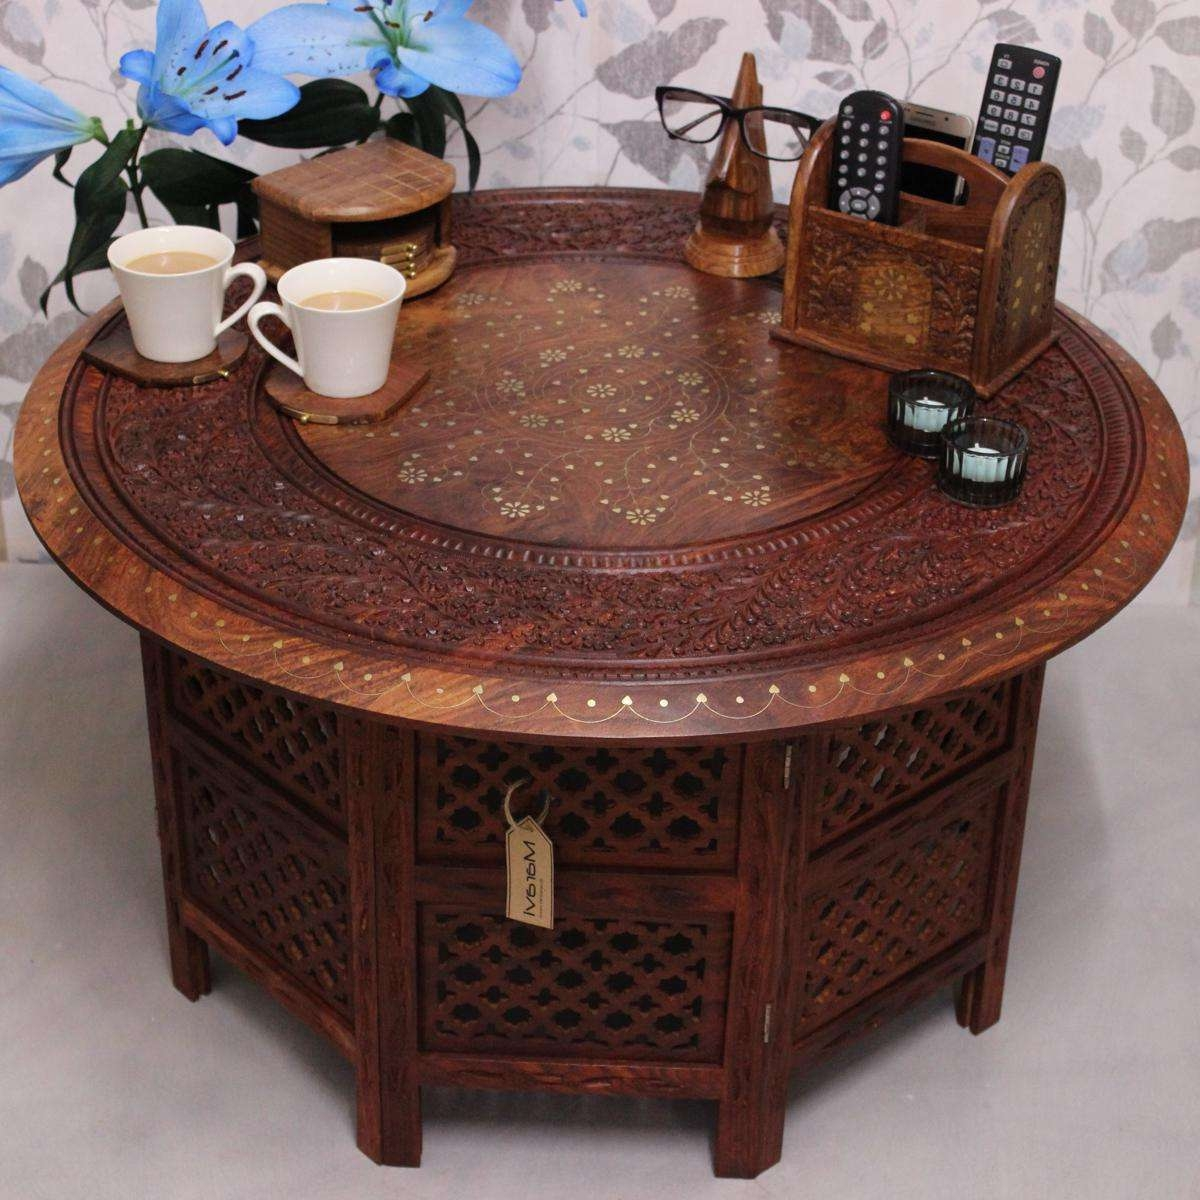 Current Indian Coffee Tables Regarding Karakoram Maravi Large Round Coffee Table Brown Solid Wooden (View 14 of 20)